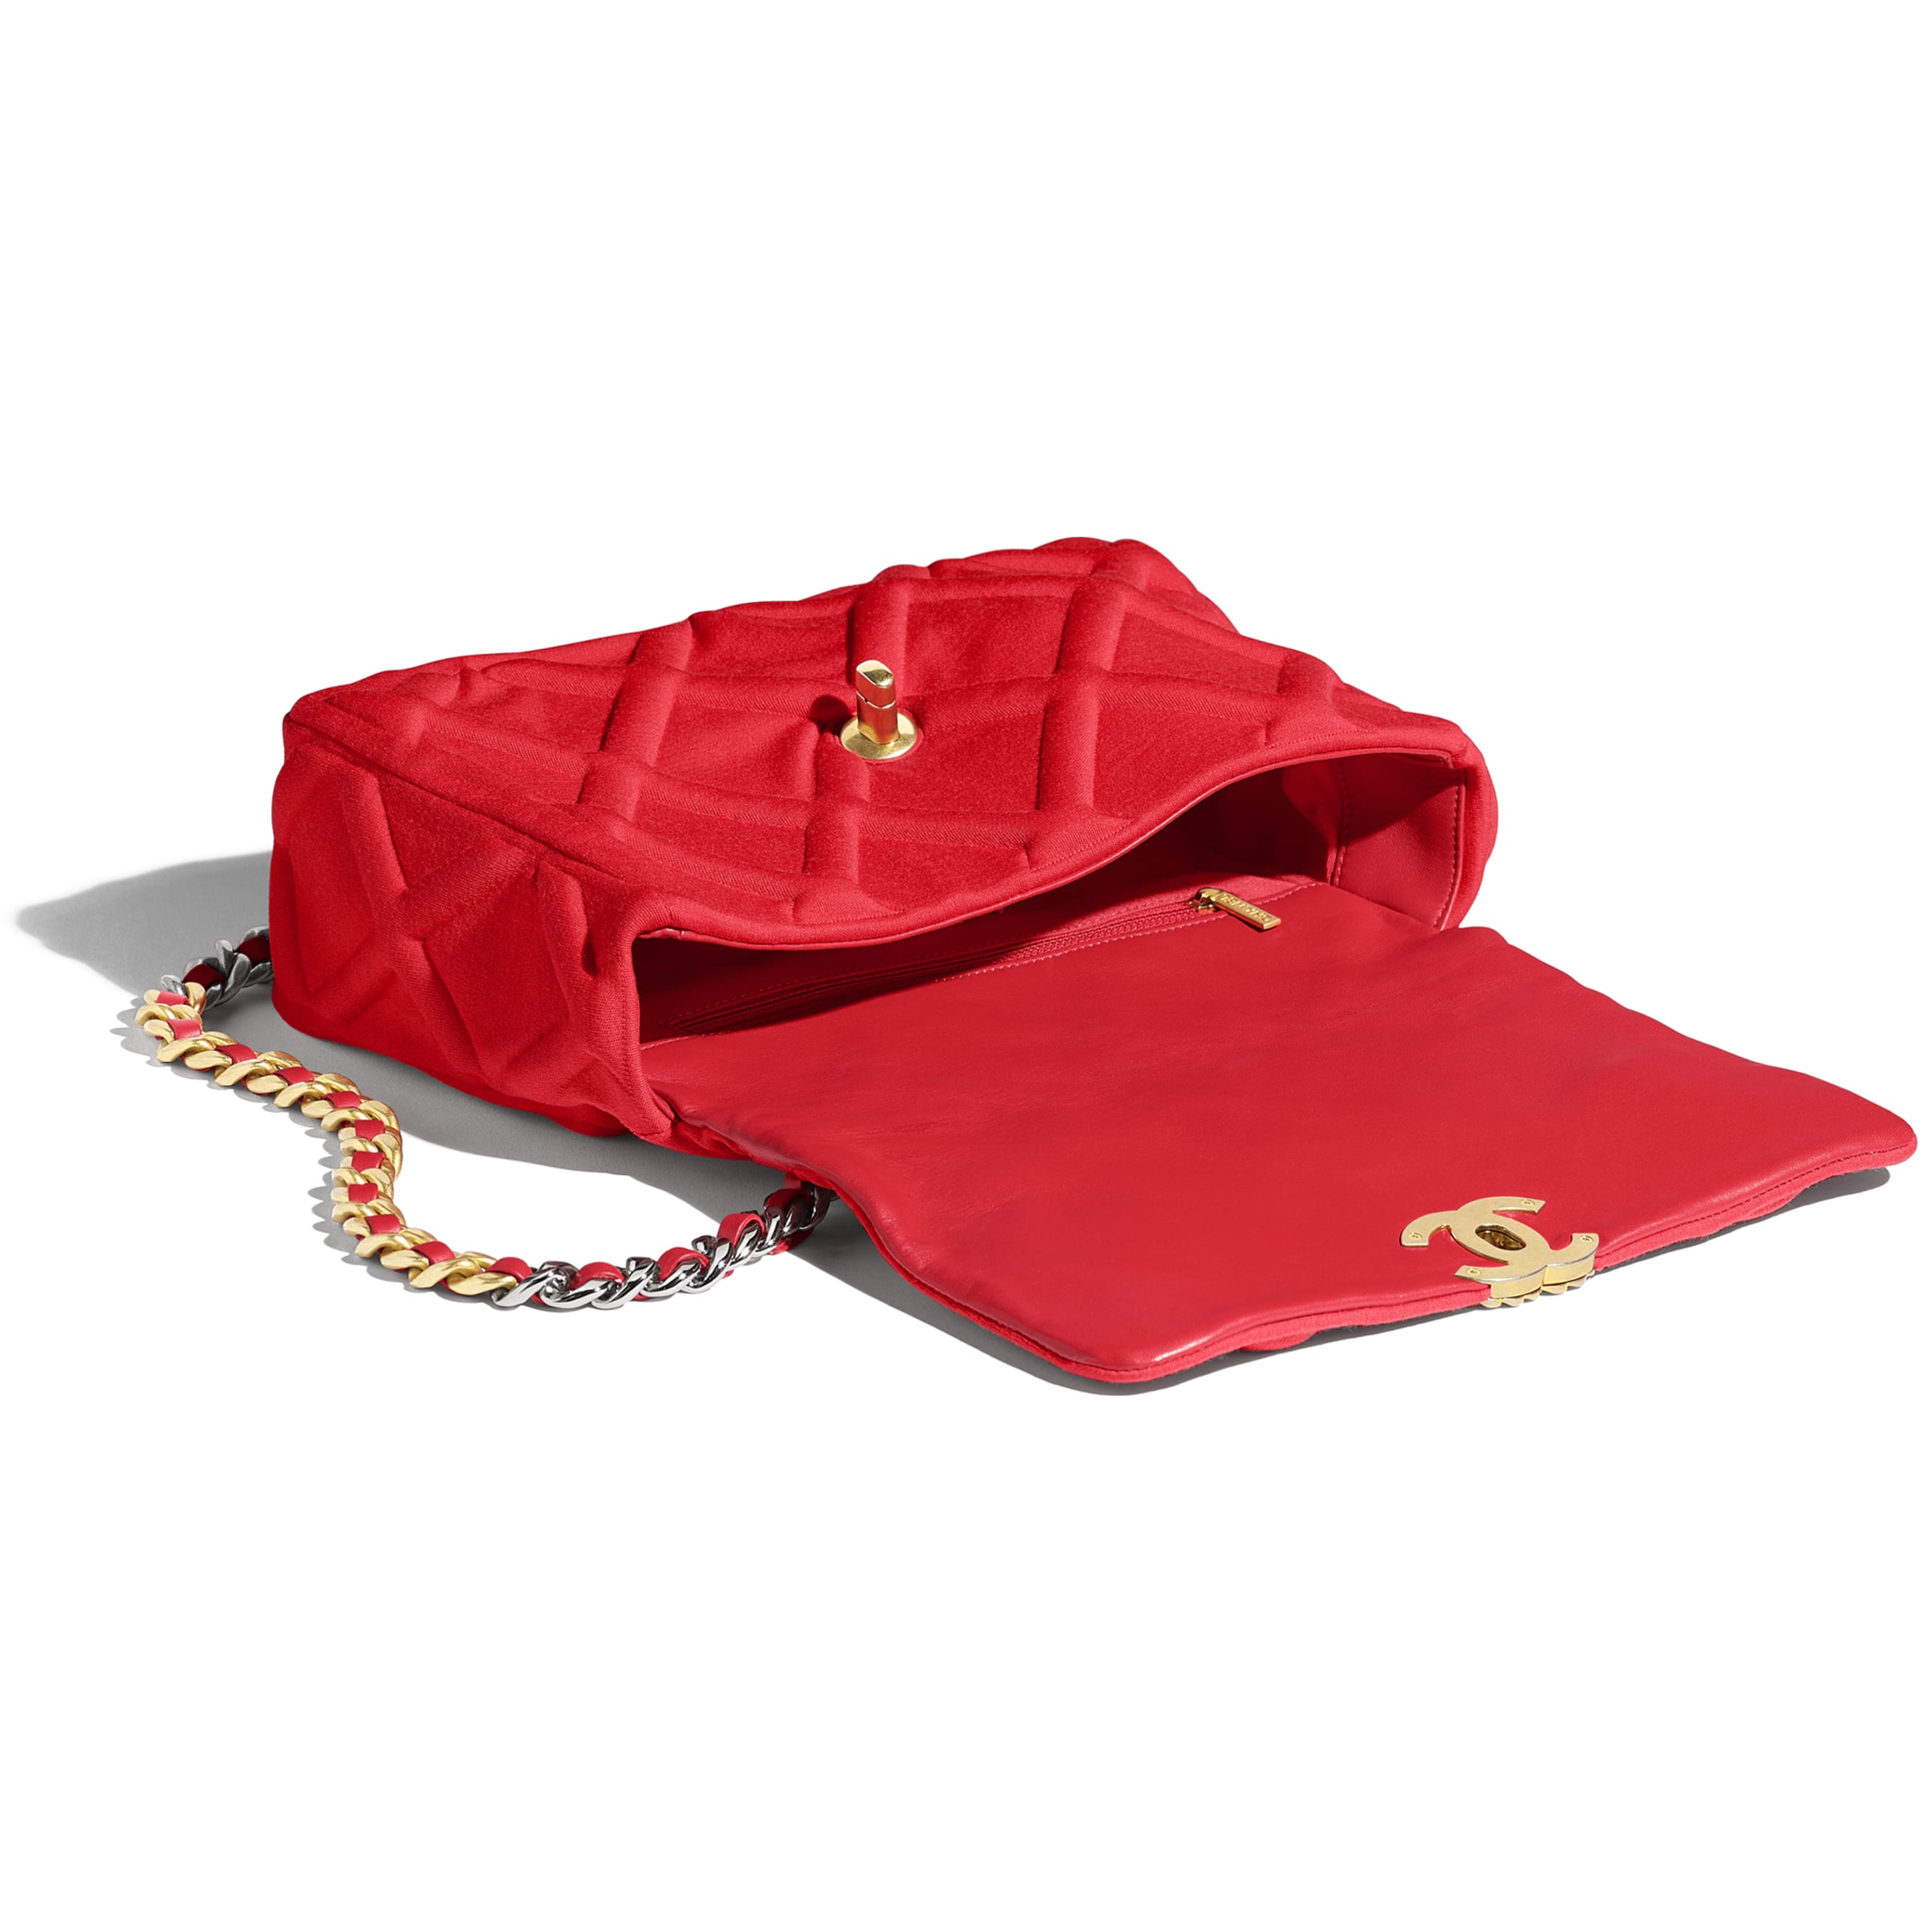 CHANEL 19 Large Flap Bag - Red - Jersey, Gold-Tone, Silver-Tone & Ruthenium-Finish Metal - Other view - see standard sized version